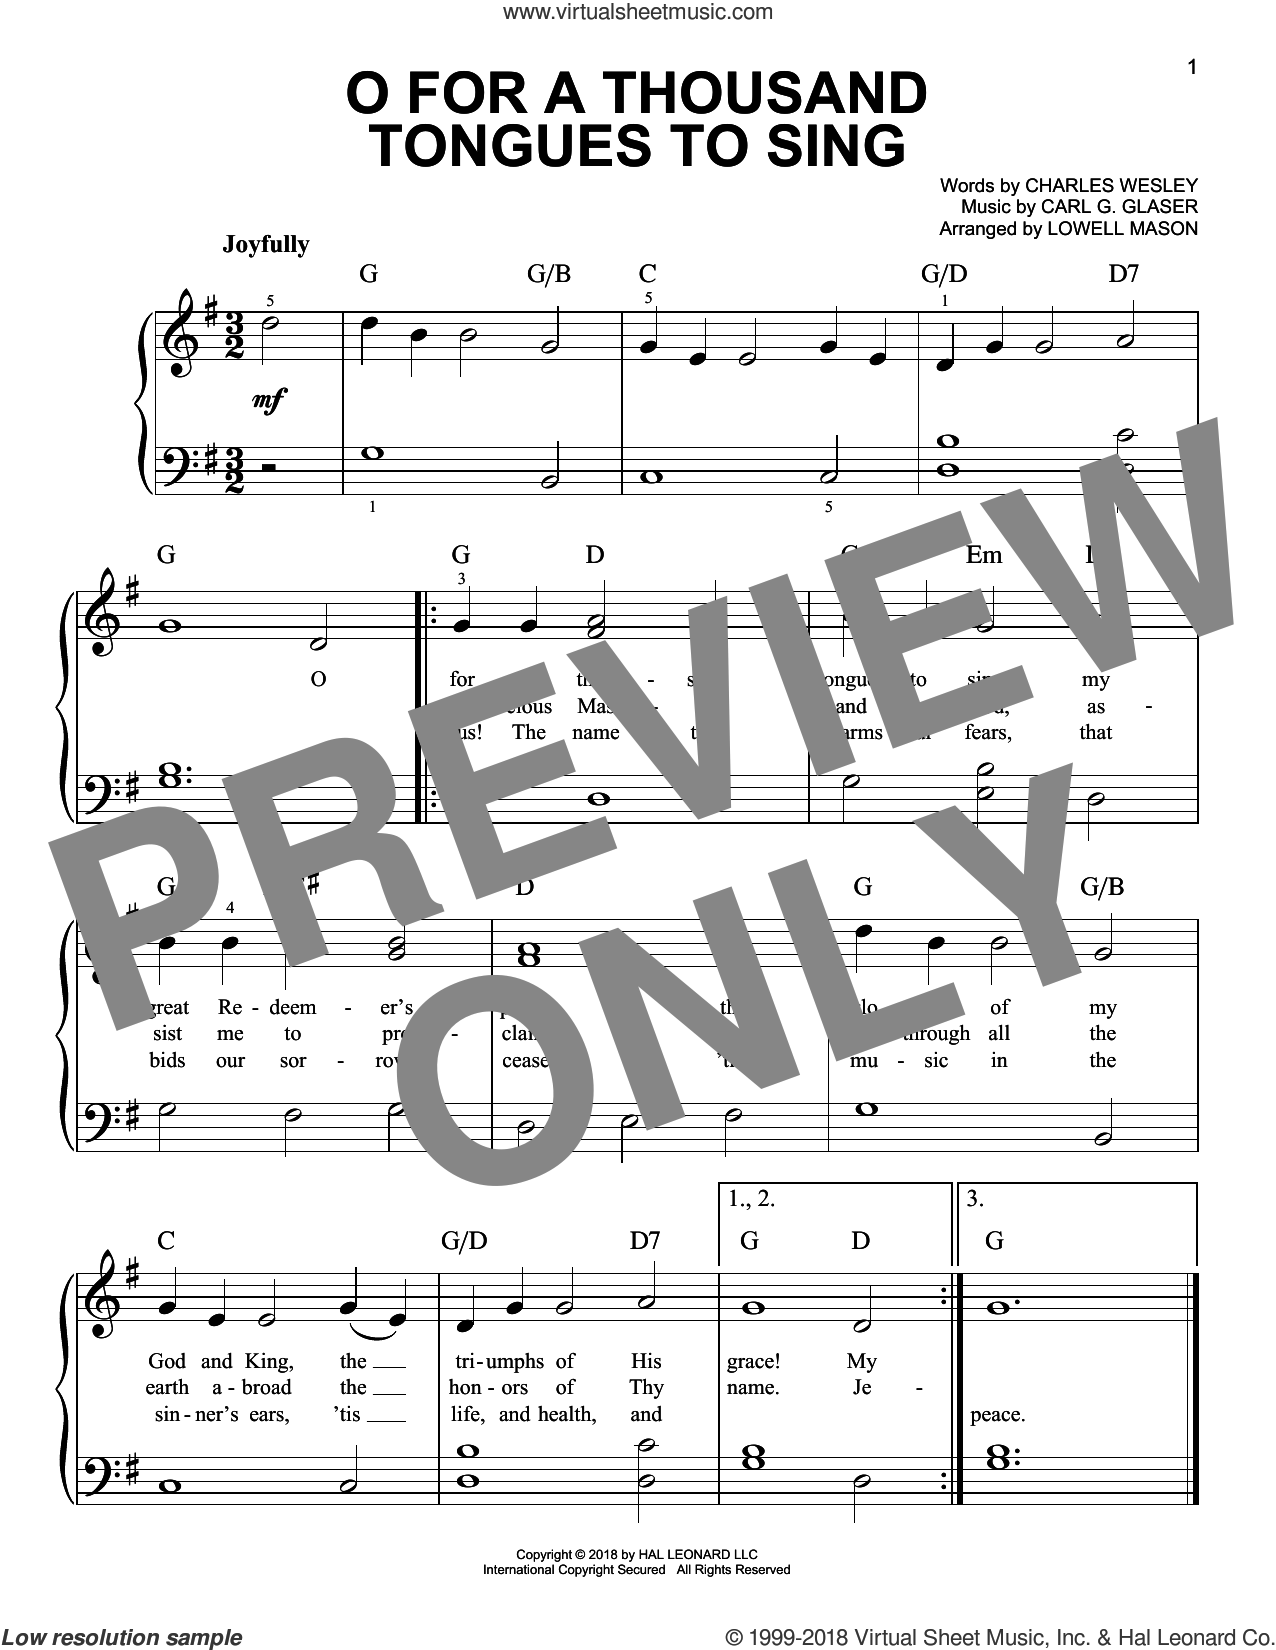 O For A Thousand Tongues To Sing sheet music for piano solo by Charles Wesley, Carl G. Glaser and Lowell Mason, easy skill level